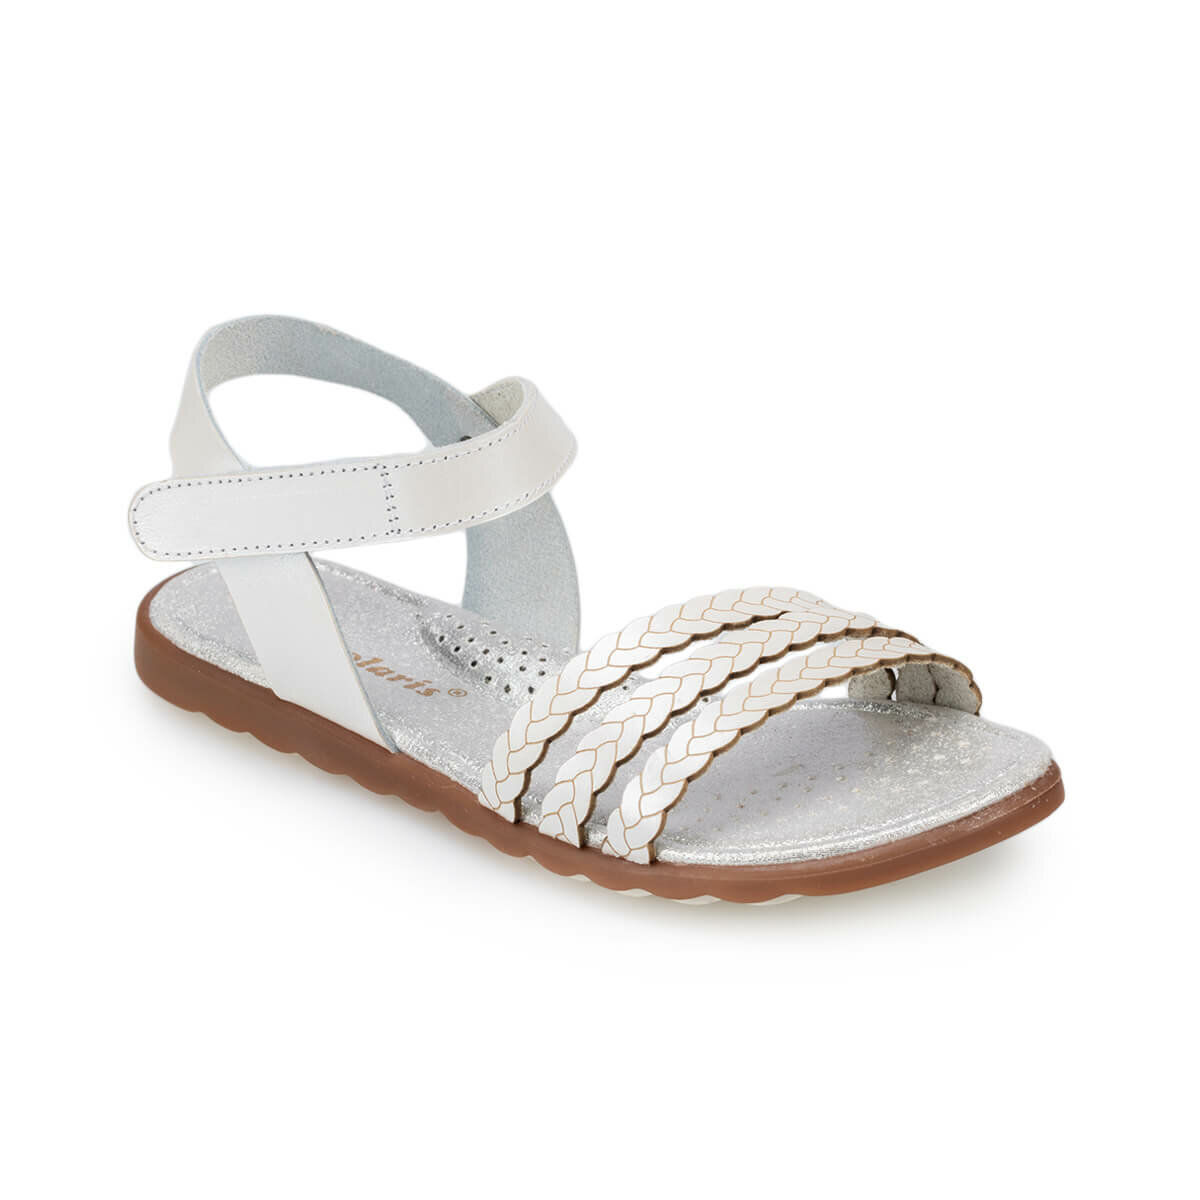 FLO White Summer Kids Shoes 2020 Fashion Sweet Children Sandals For Girls Toddler Baby Breathable Hoolow Out Bow Shoes Female Child Sandals Polaris 91. 511351.F